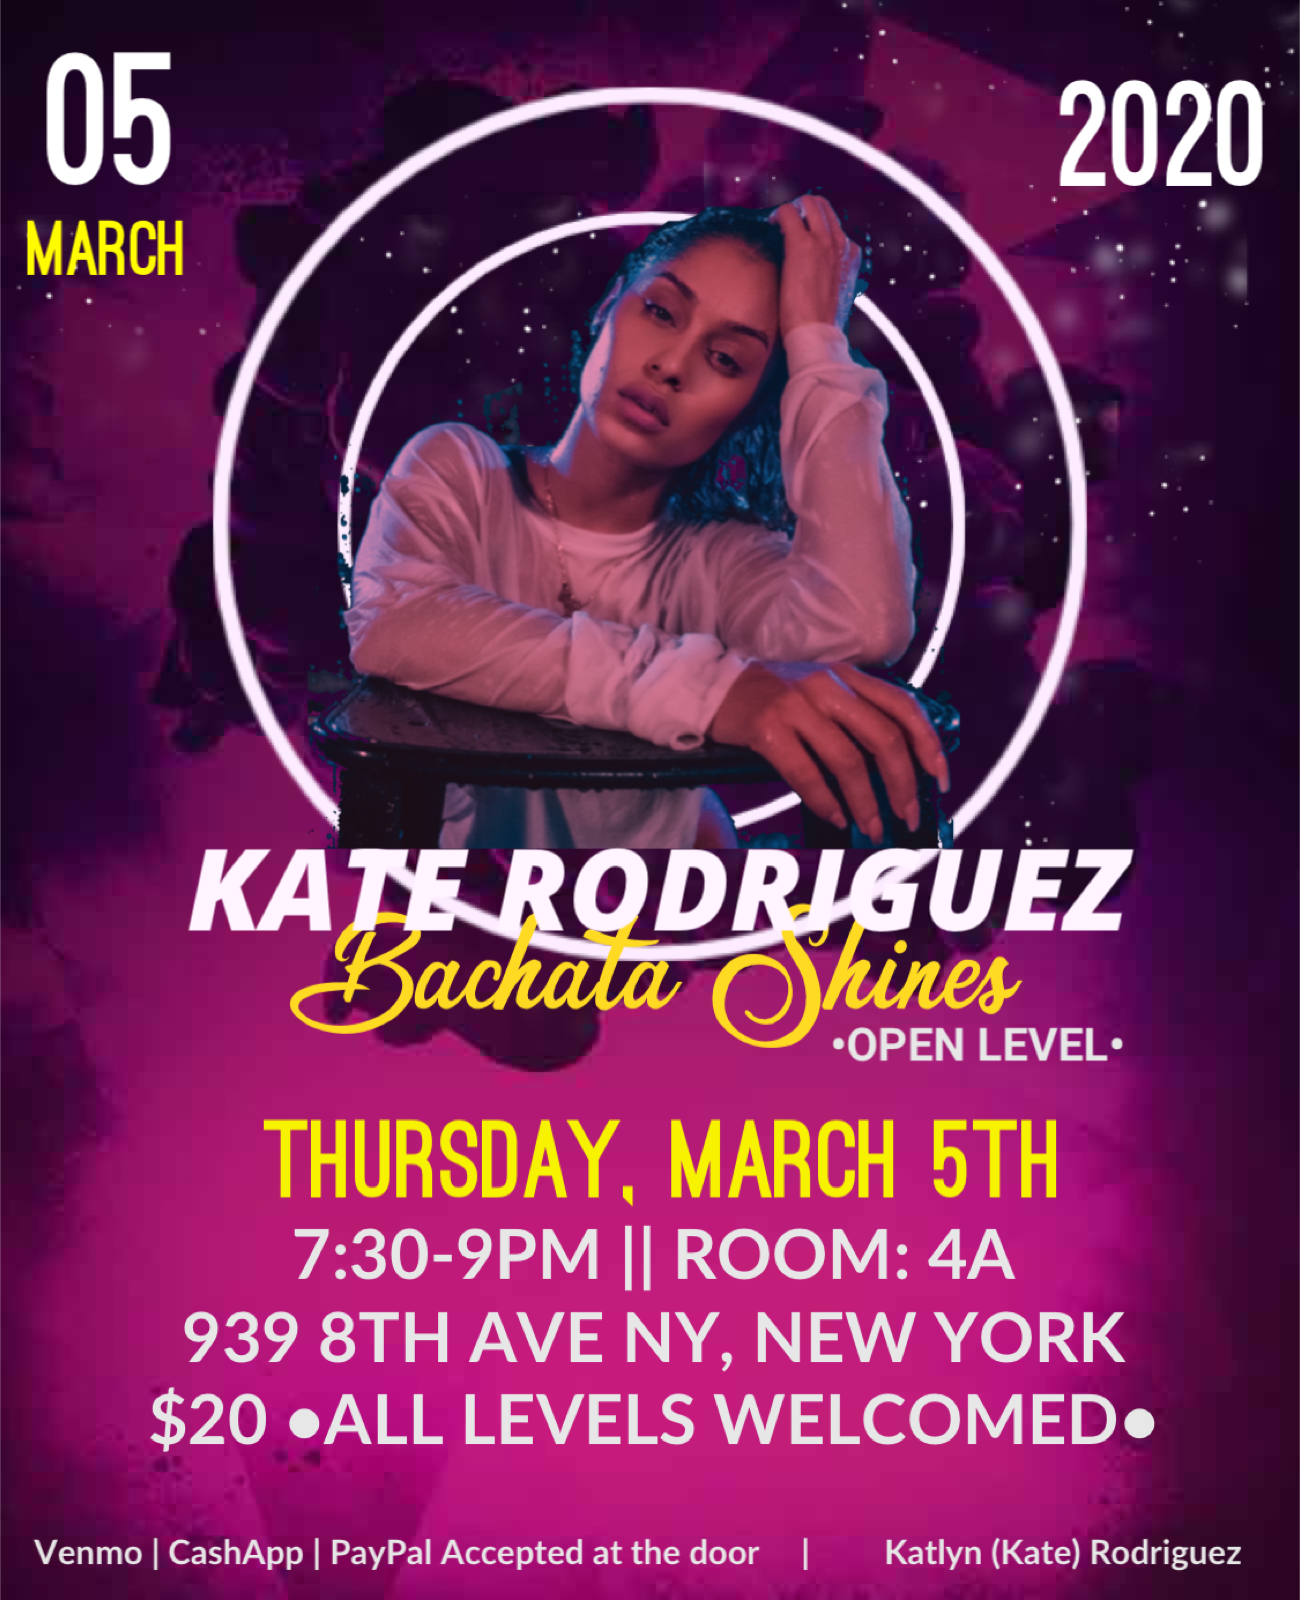 KATE RODRIGUEZ BACHATA SHINES WORKSHOP